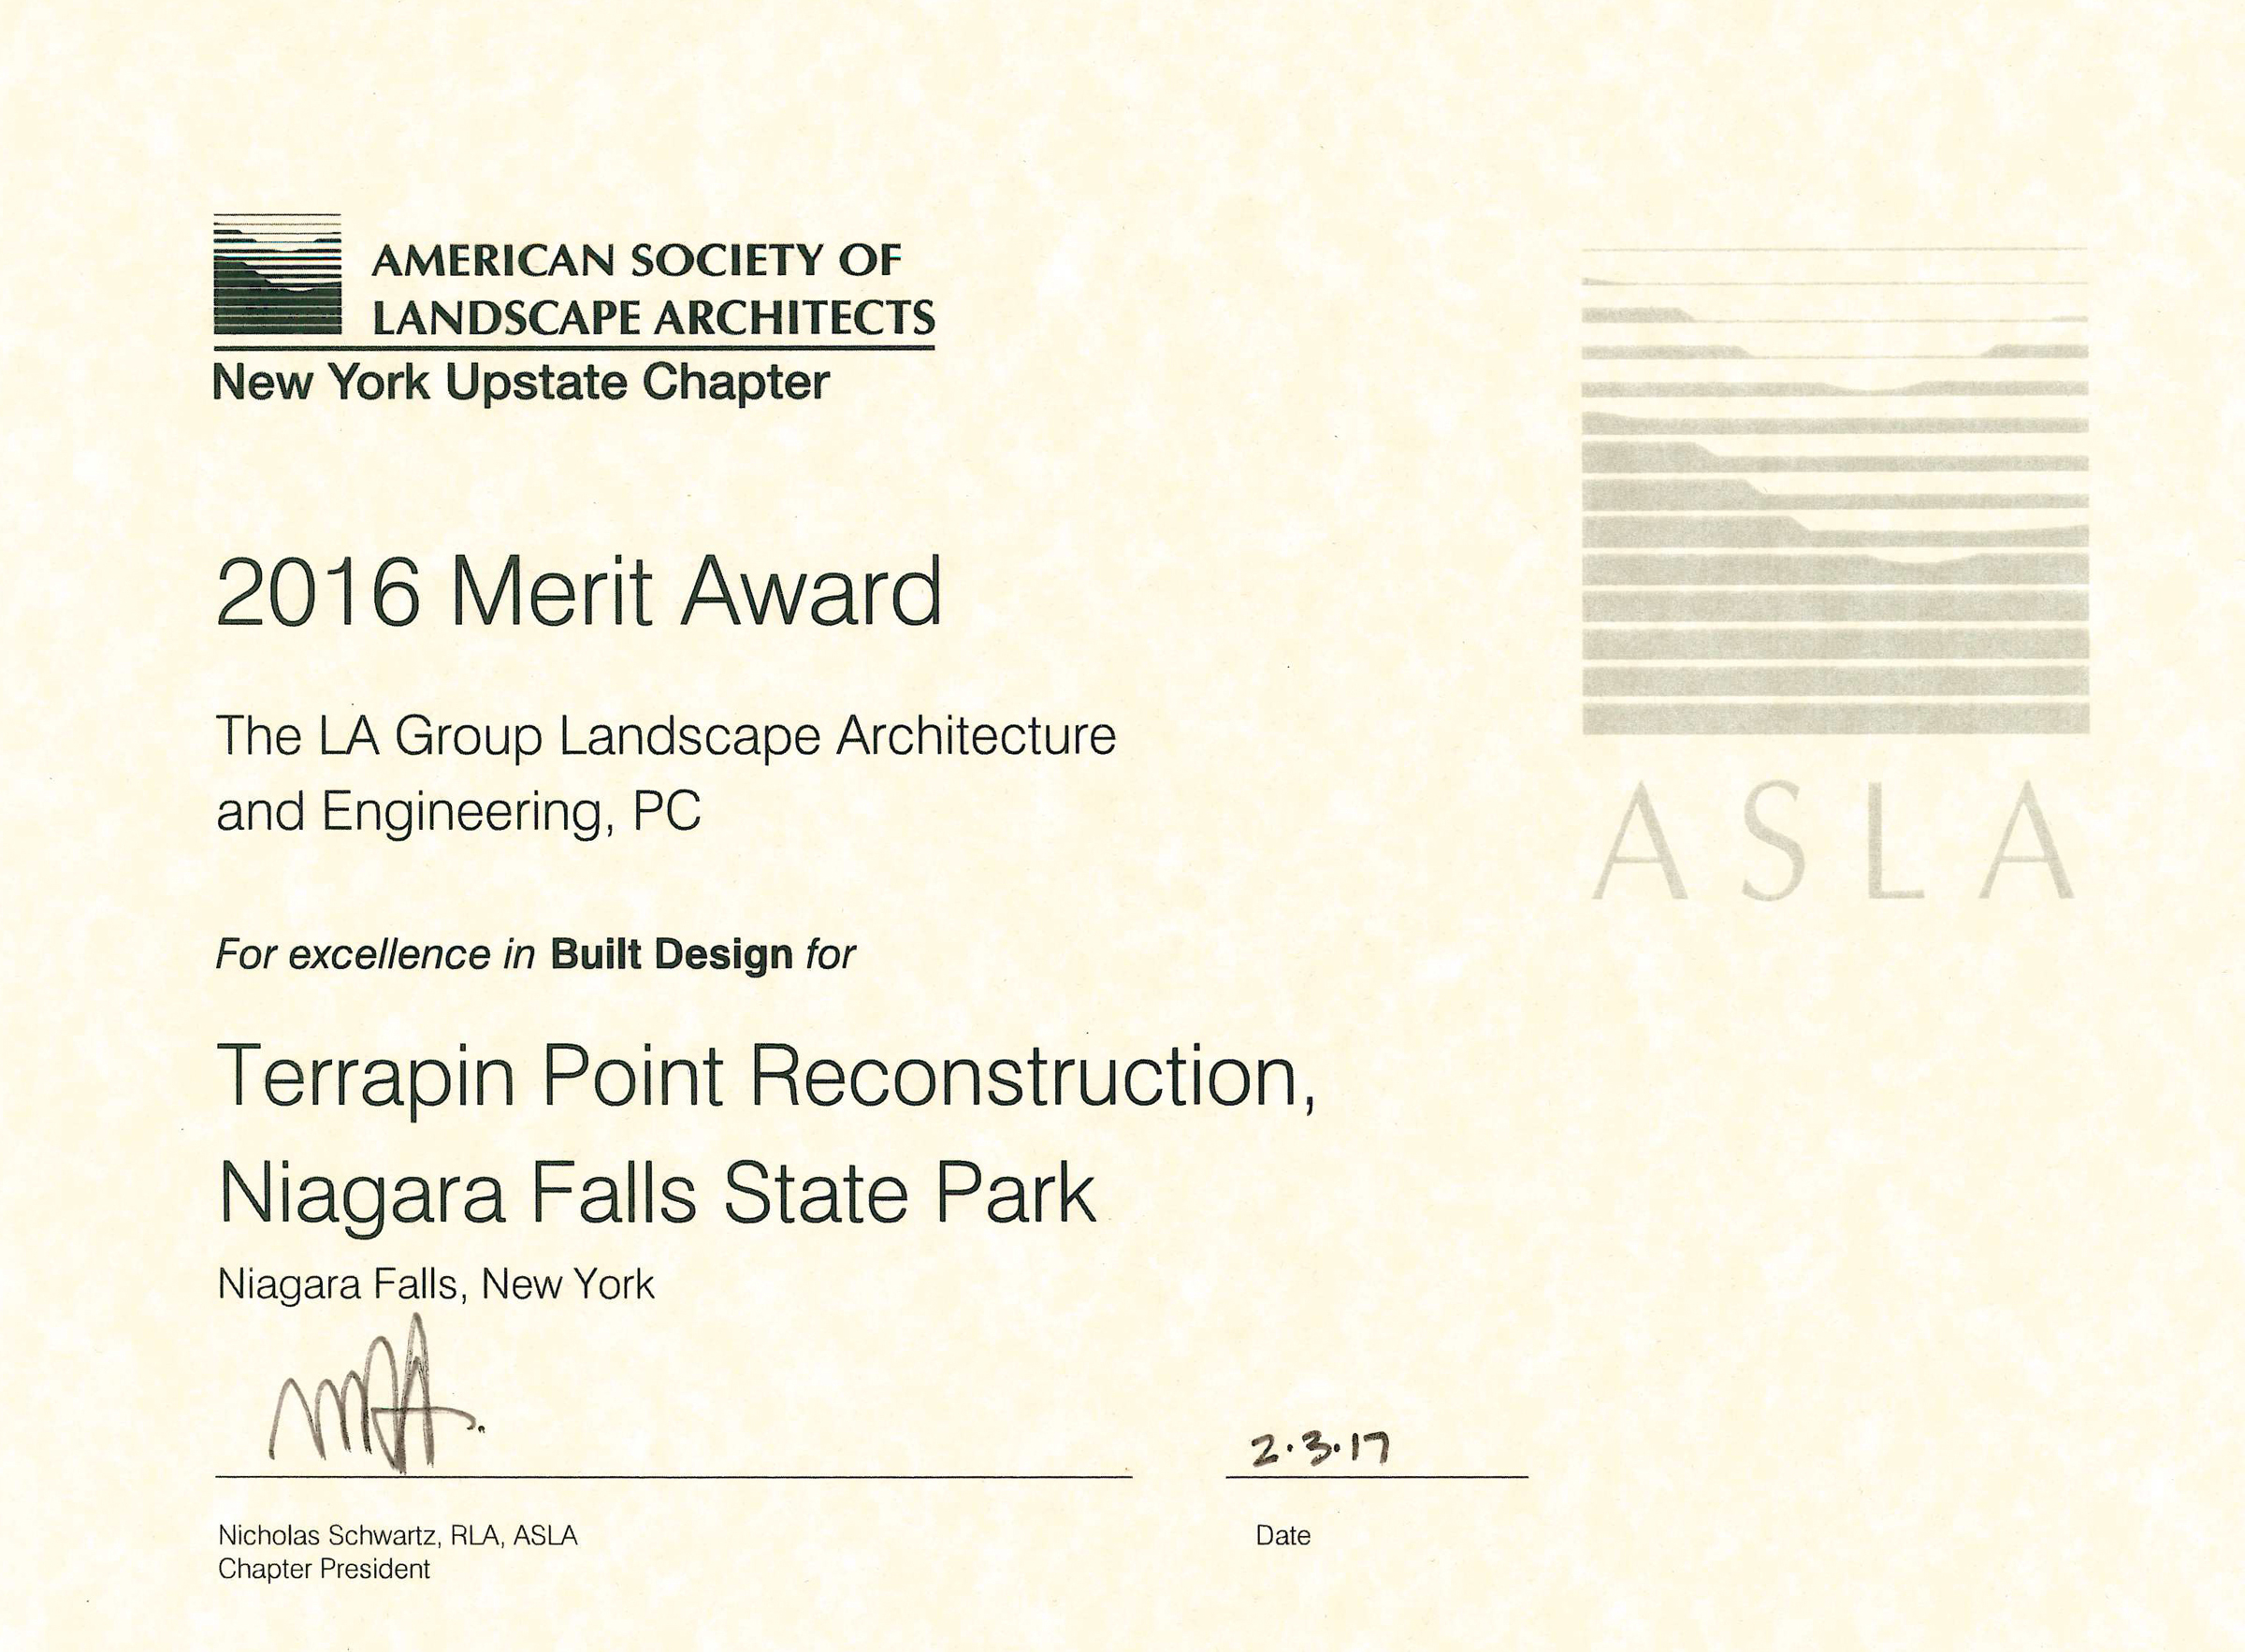 Project Objectives Included The Major Renovation Of Several Major Areas  Within The Park, Including Terrapin Point, Prospect Point And Lower Grove  Trails, ...  Merit Certificate Comments